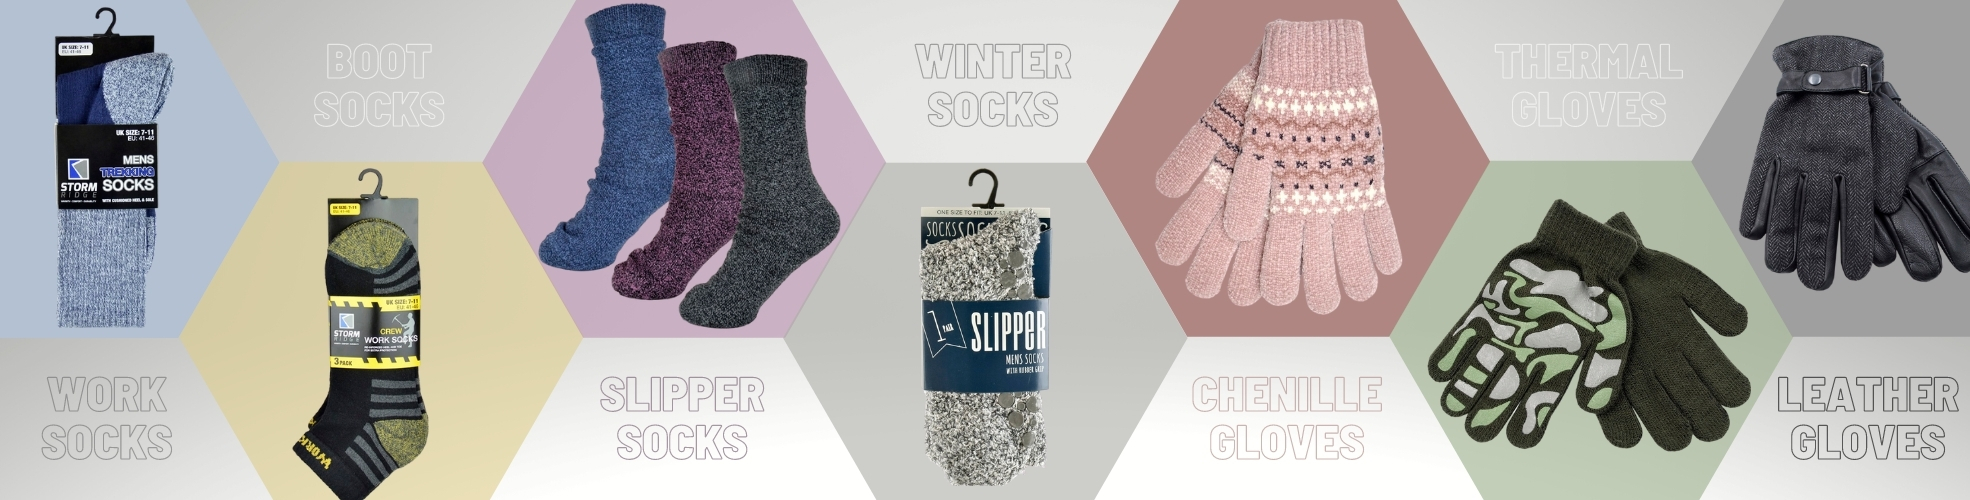 Wholesale Winter Socks, Thermal Socks, Slipper Socks, Wholesale Gloves, Leather Gloves